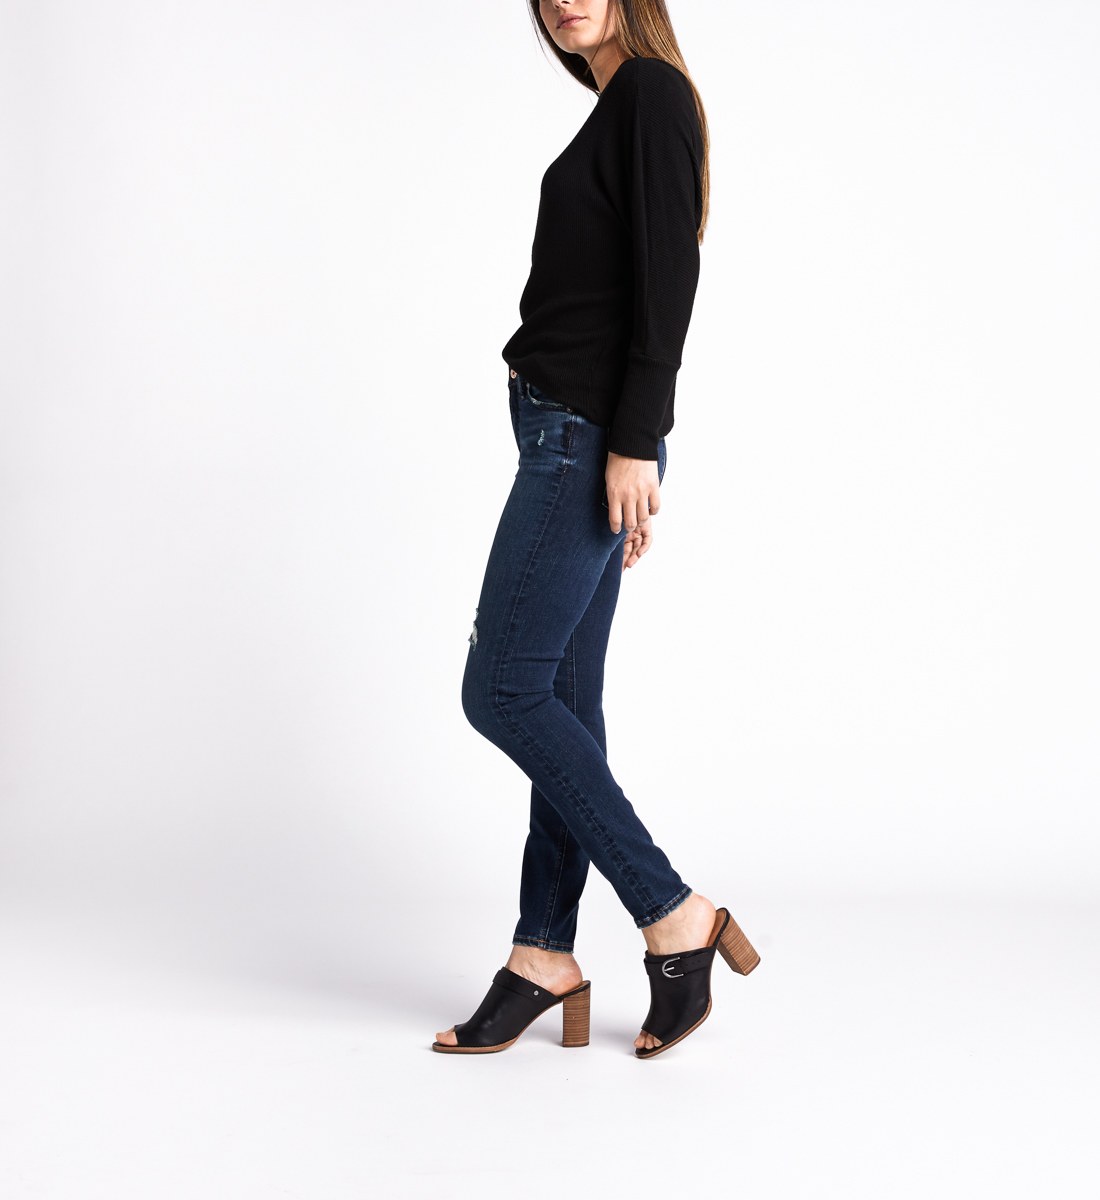 Most Wanted Mid Rise Skinny Leg Jeans,Indigo Side